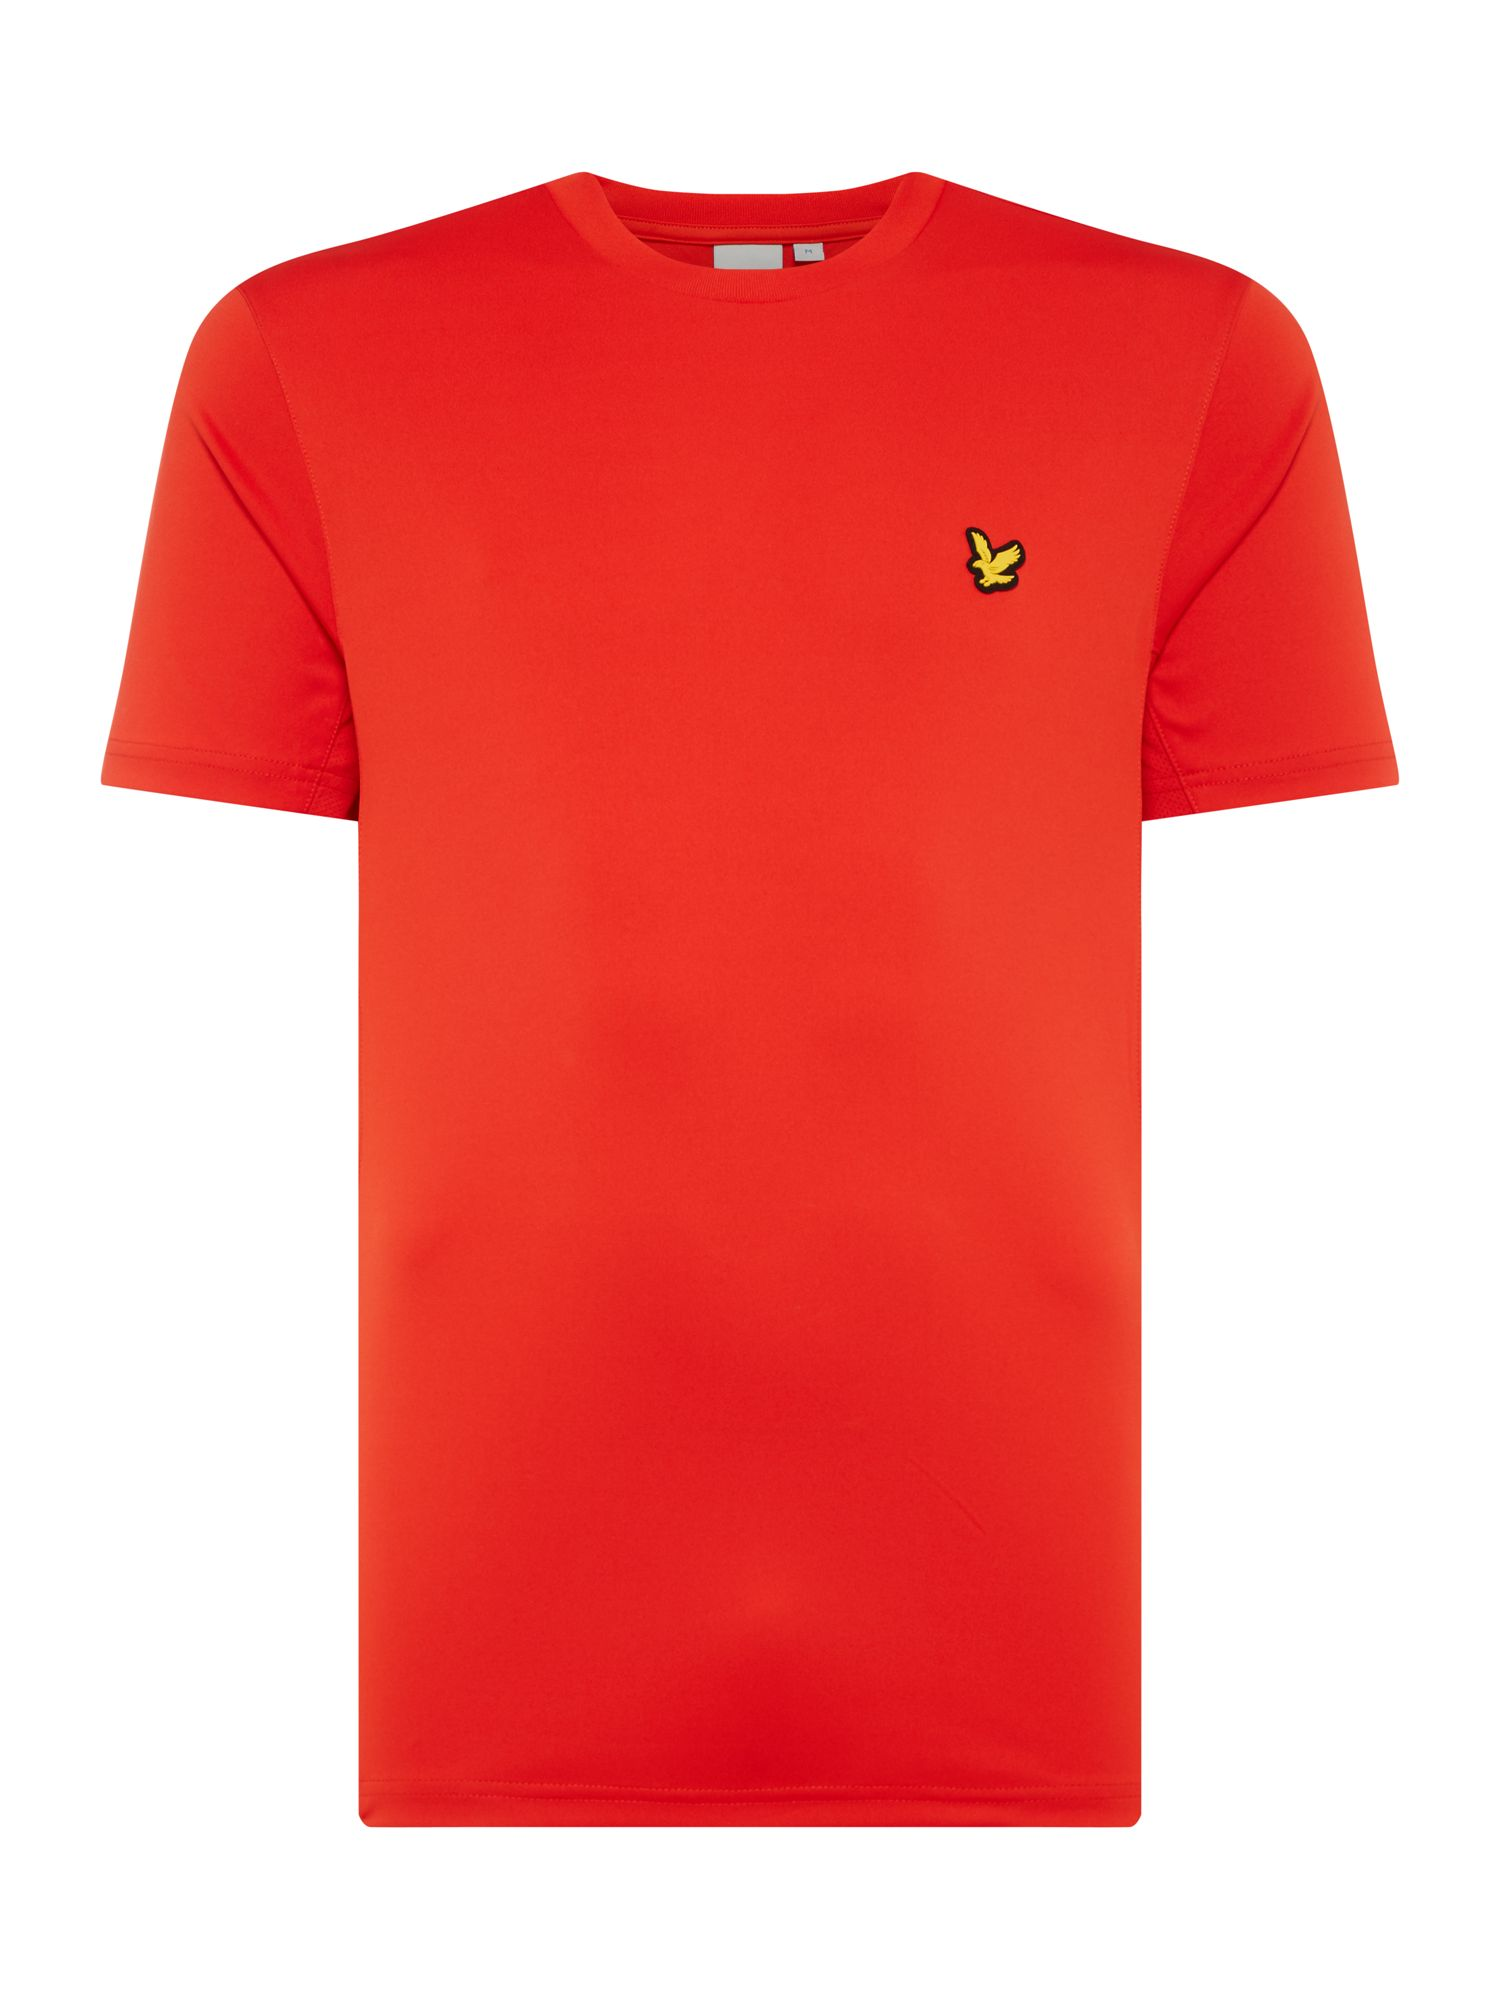 Men's Lyle and Scott Sports Crew-Neck Short-Sleeve T-Shirt, True Red